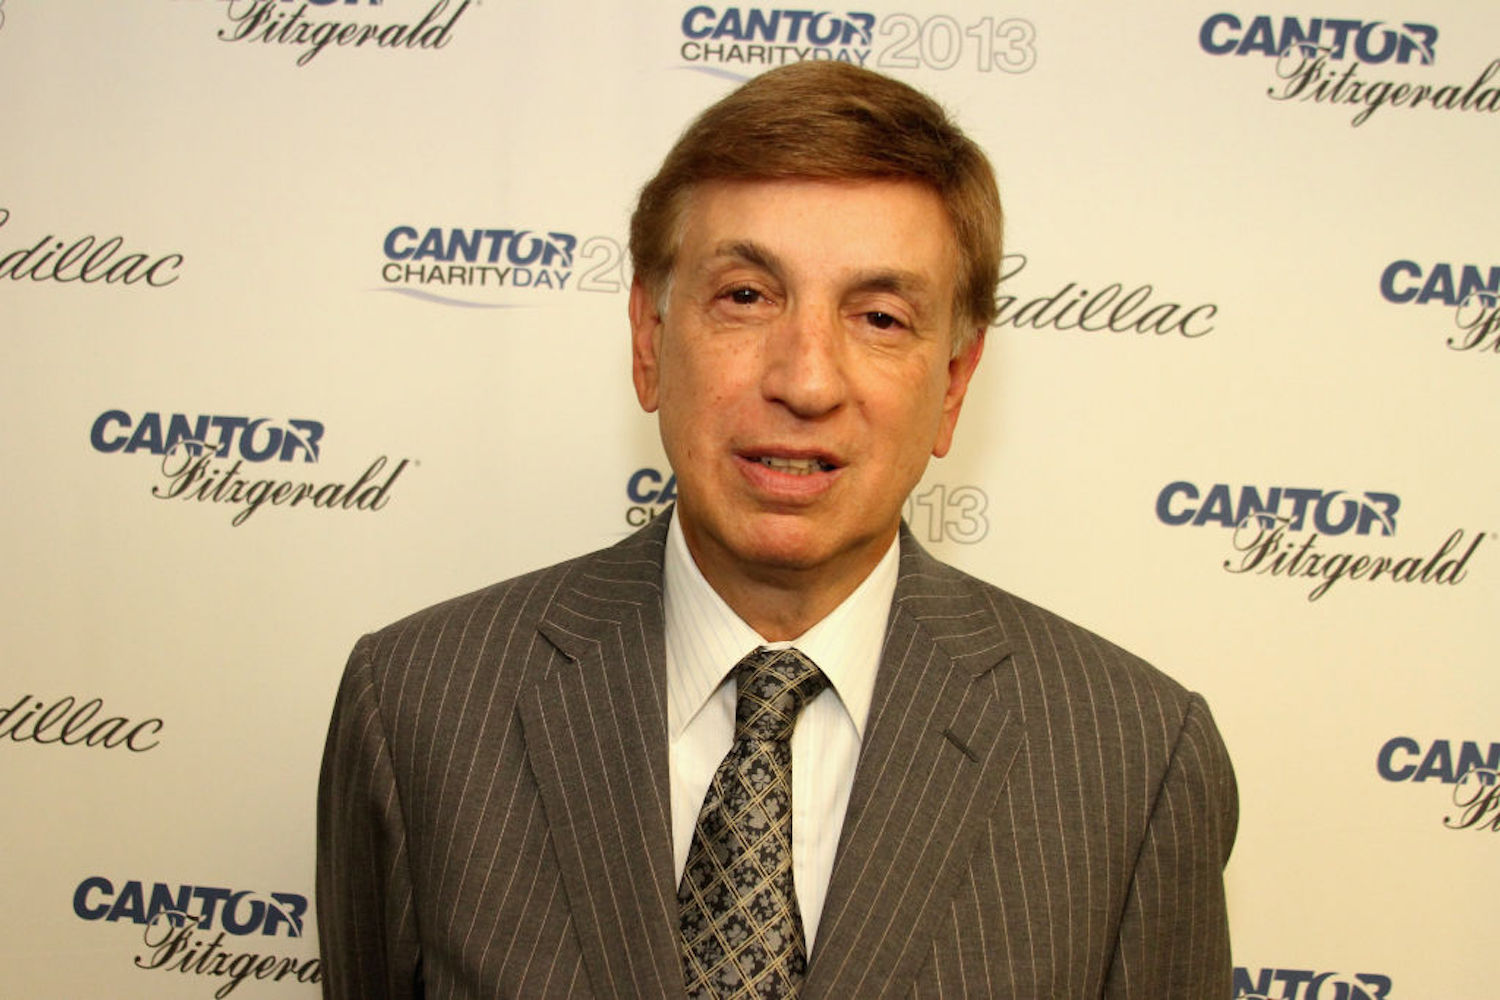 Marv Albert is still calling NBA games 23 years after he pleaded guilty to assault and battery in bizarre 1997 sex case.